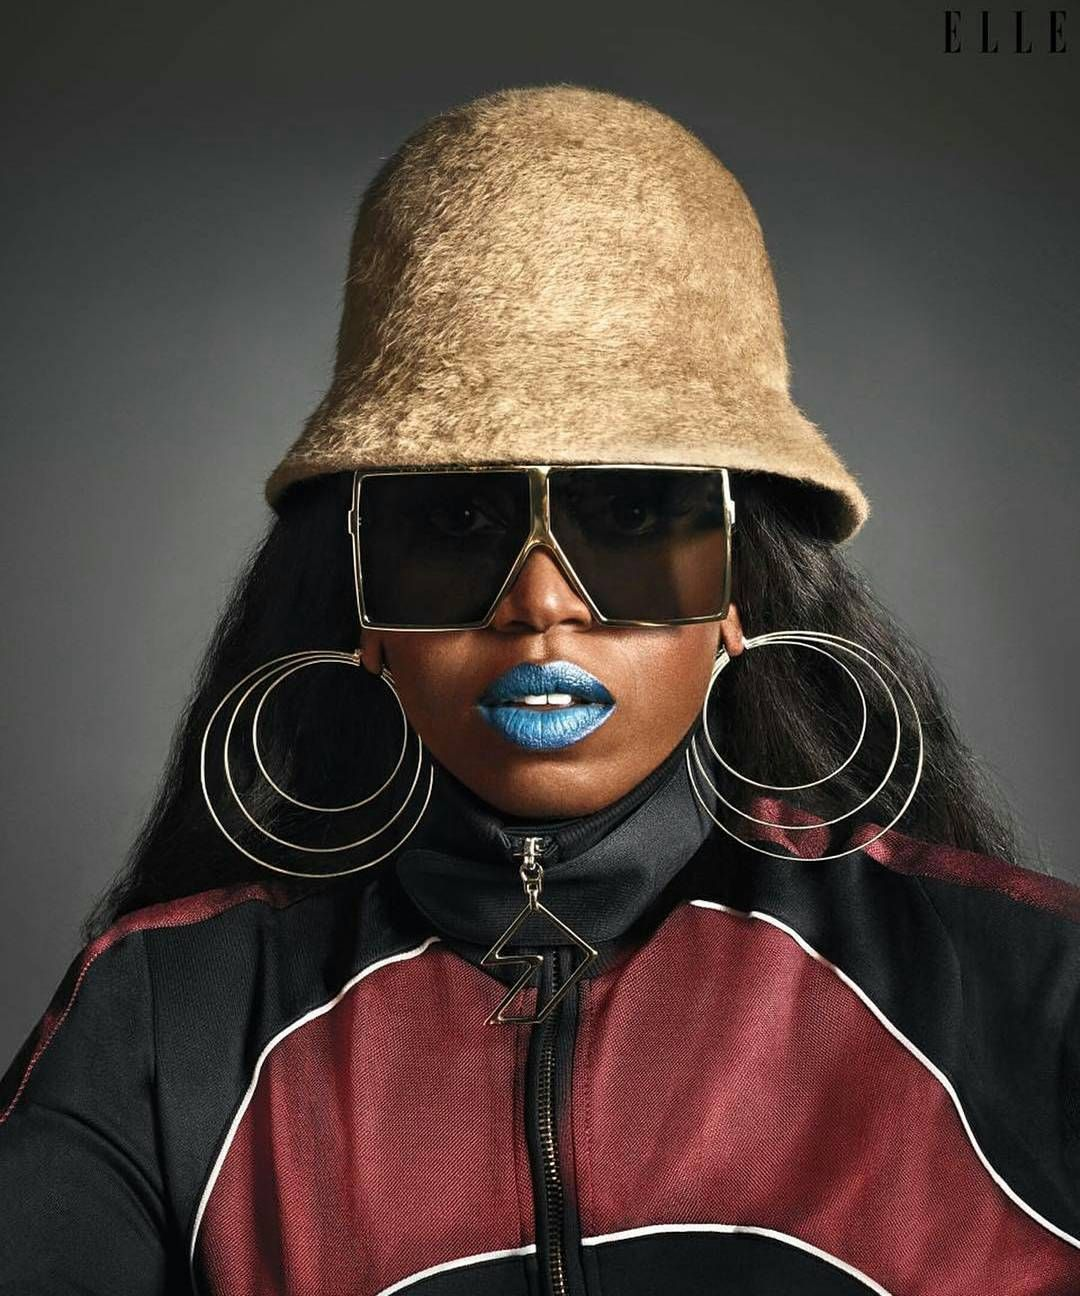 Coolness Personified. Missy Elliott for Elle USA June 2017 . Afro life Andro living. #WCW ------ #AfroAndro / #Afrocentric / #Androgynous / #Style / #AndrogynousStyle / #StylishWomen / #StylishMen / #ThisAndrogynousLife / #WhatIWore /#AndrogynousFashion / #ProudlyAndrogynous / #Slay / #Dapper / #StyleDiary / #StyleInspired / #OurAndrogynousLife / #Stylish / #StyleBlog